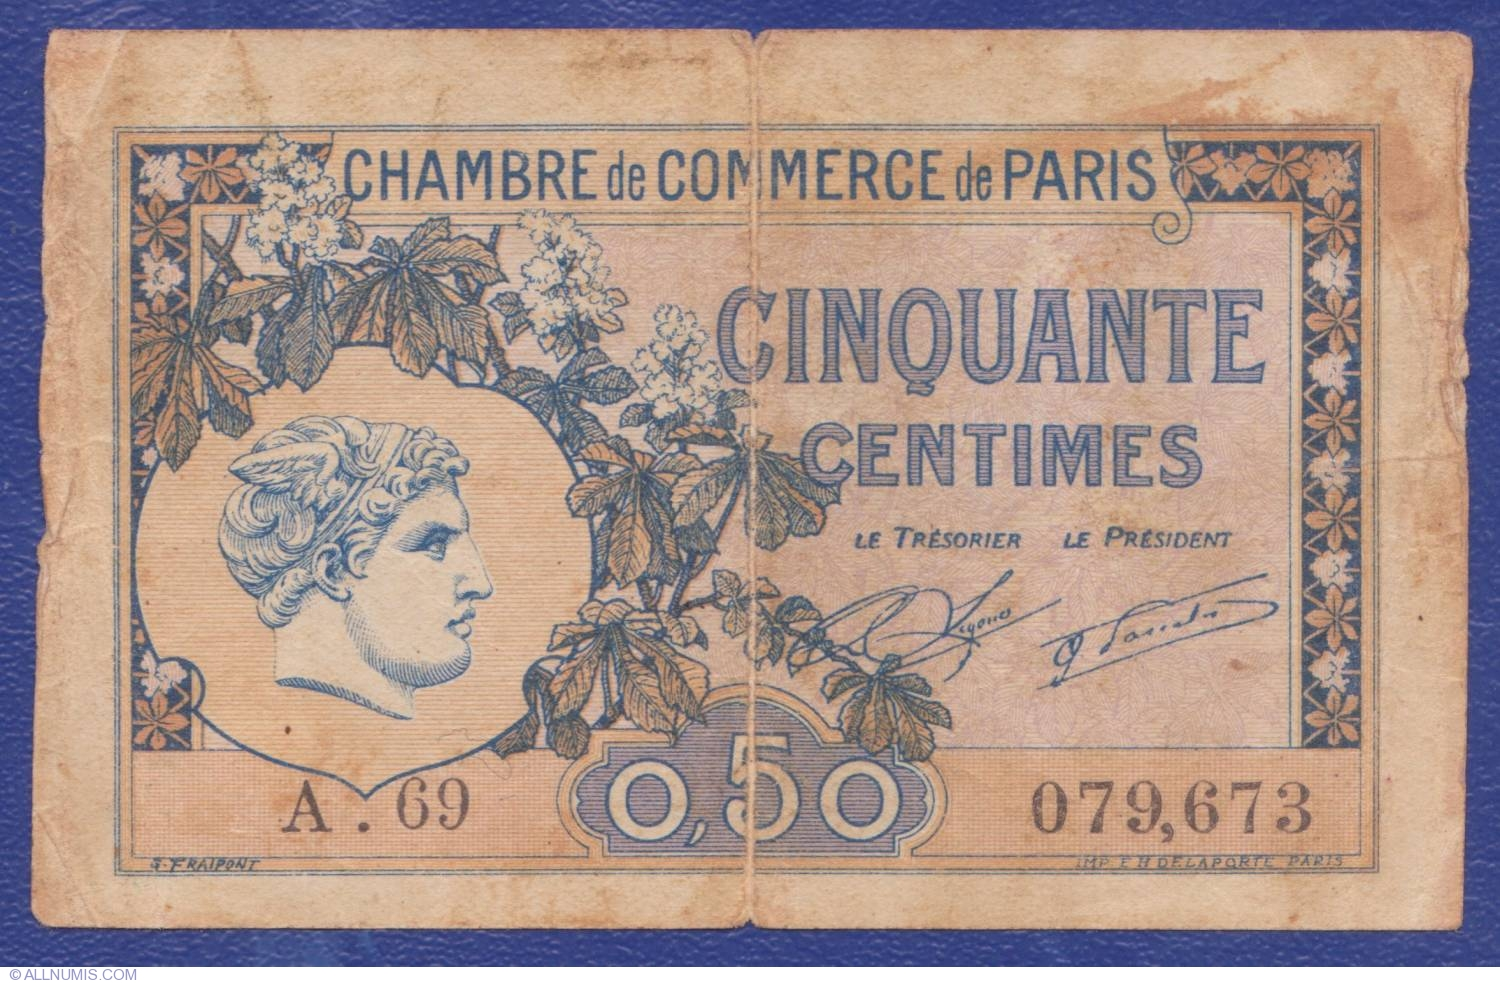 50 centimes 1920 paris chambre de commerce france for Chambre de commmerce